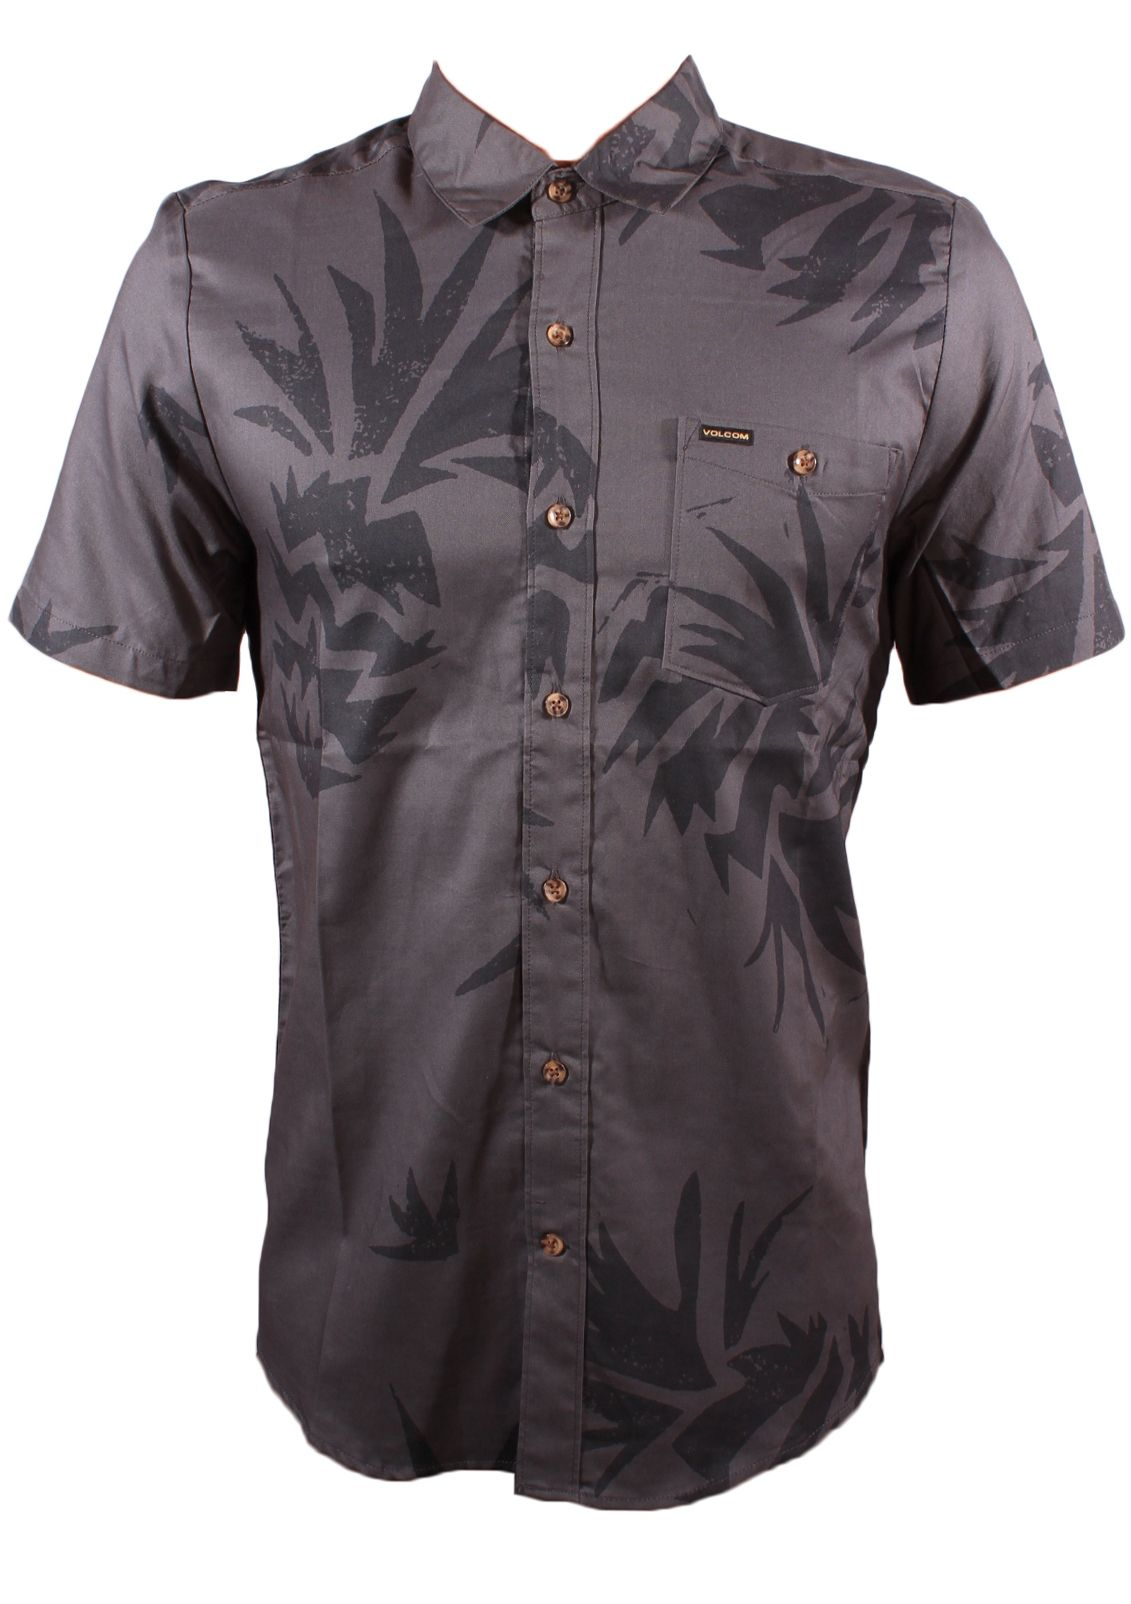 Shop Pina S/S Woven by Volcom (#A0411512) on Jack's Surfboards